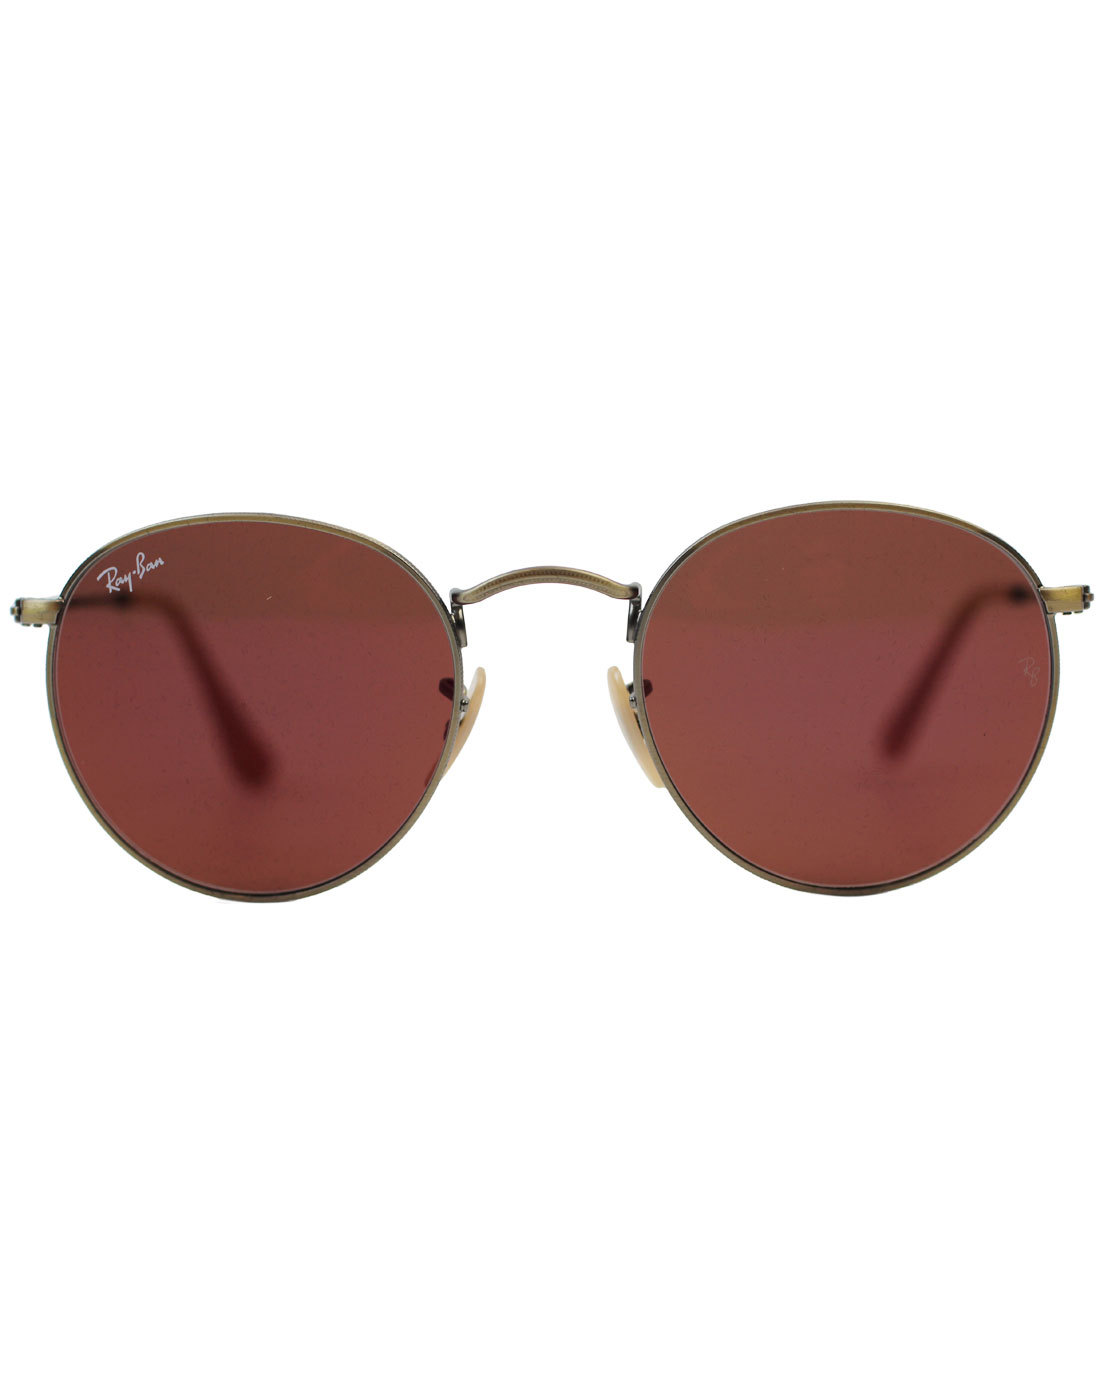 9c6365ff71 RAY-BAN 60s Mod RB3447 Red Mirror Round Sunglasses Brushed Bronze